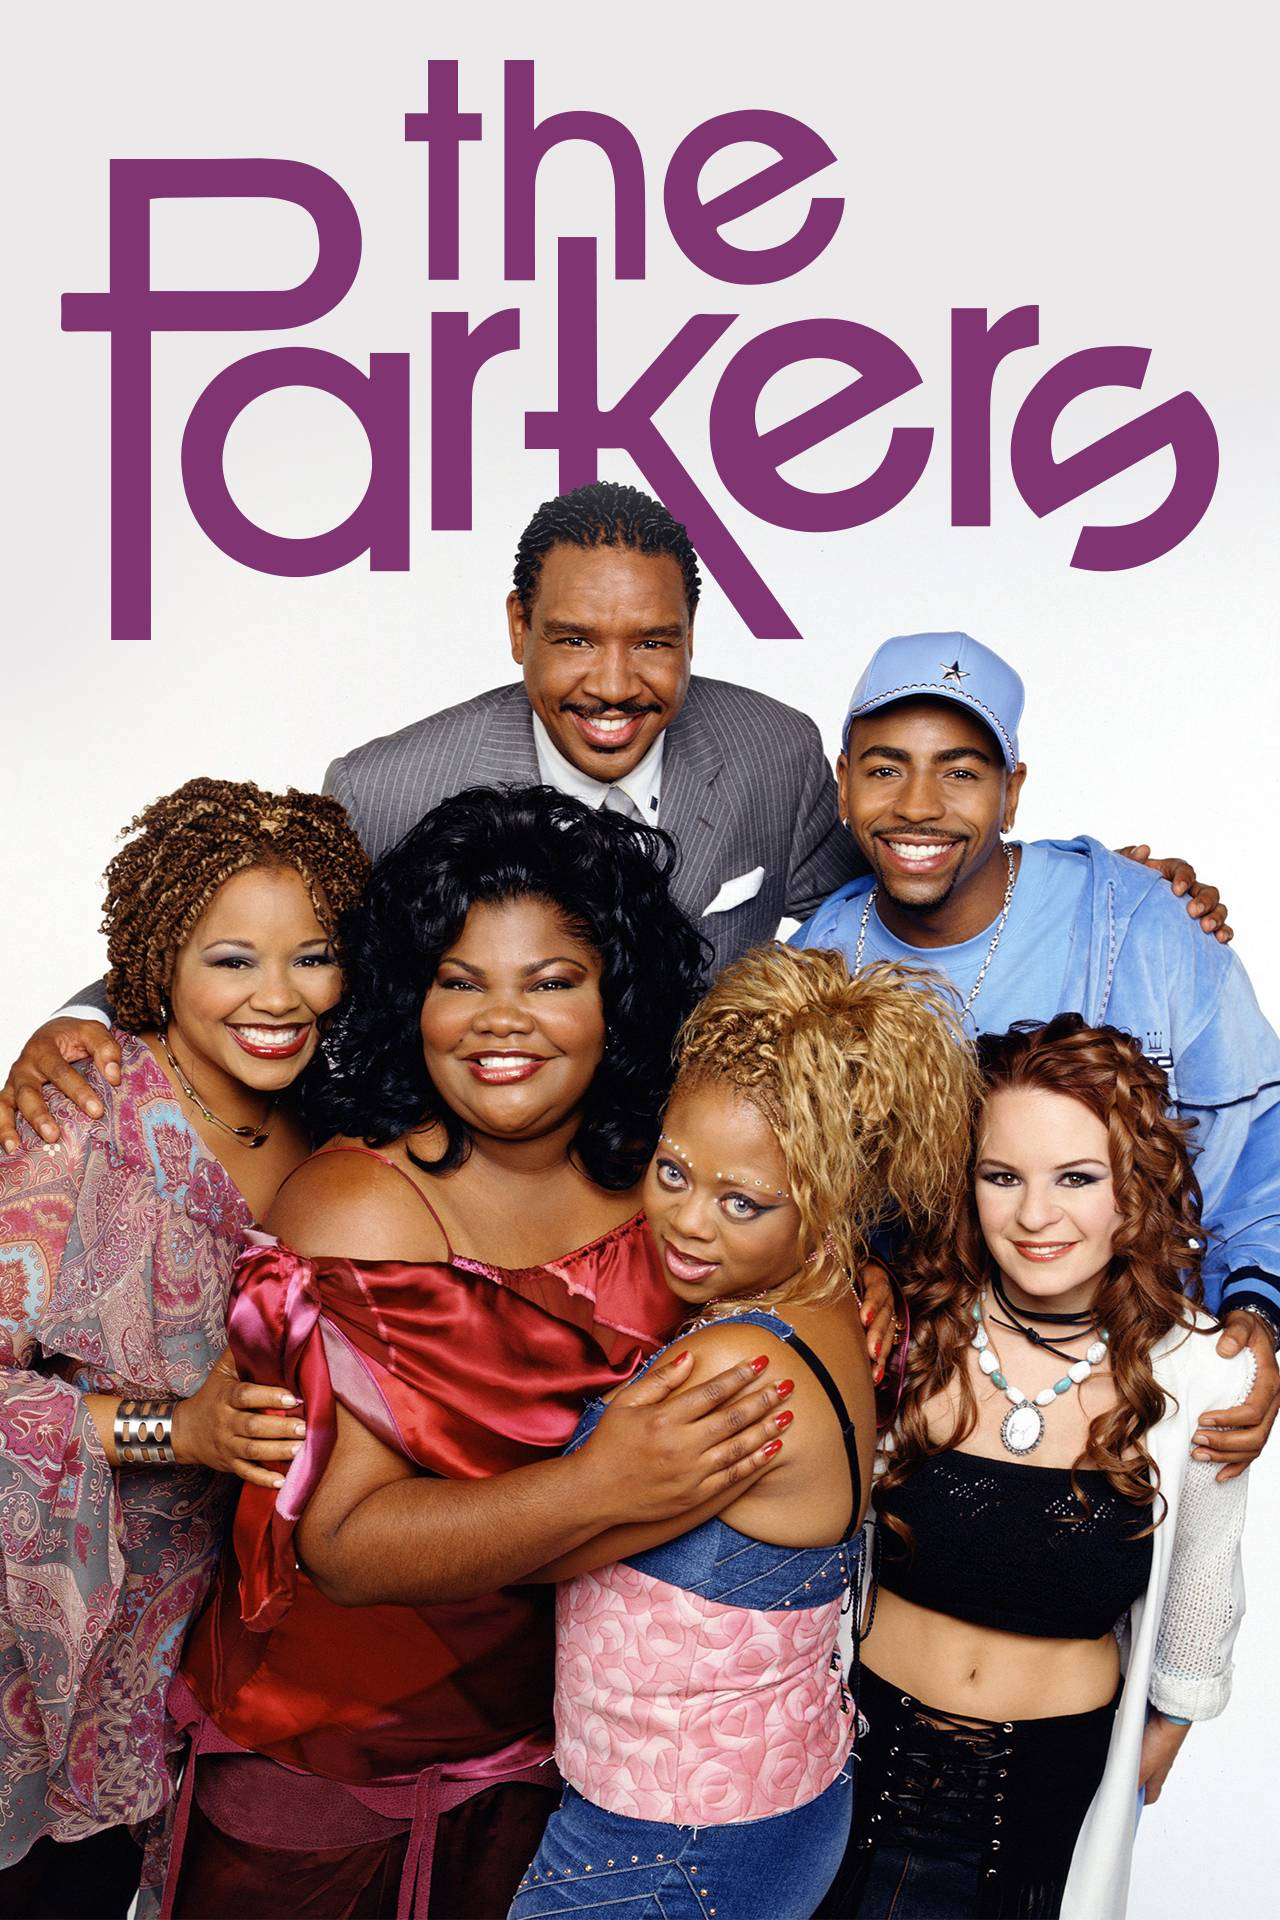 The parkers on bet dell 4k monitor 10 bitcoins